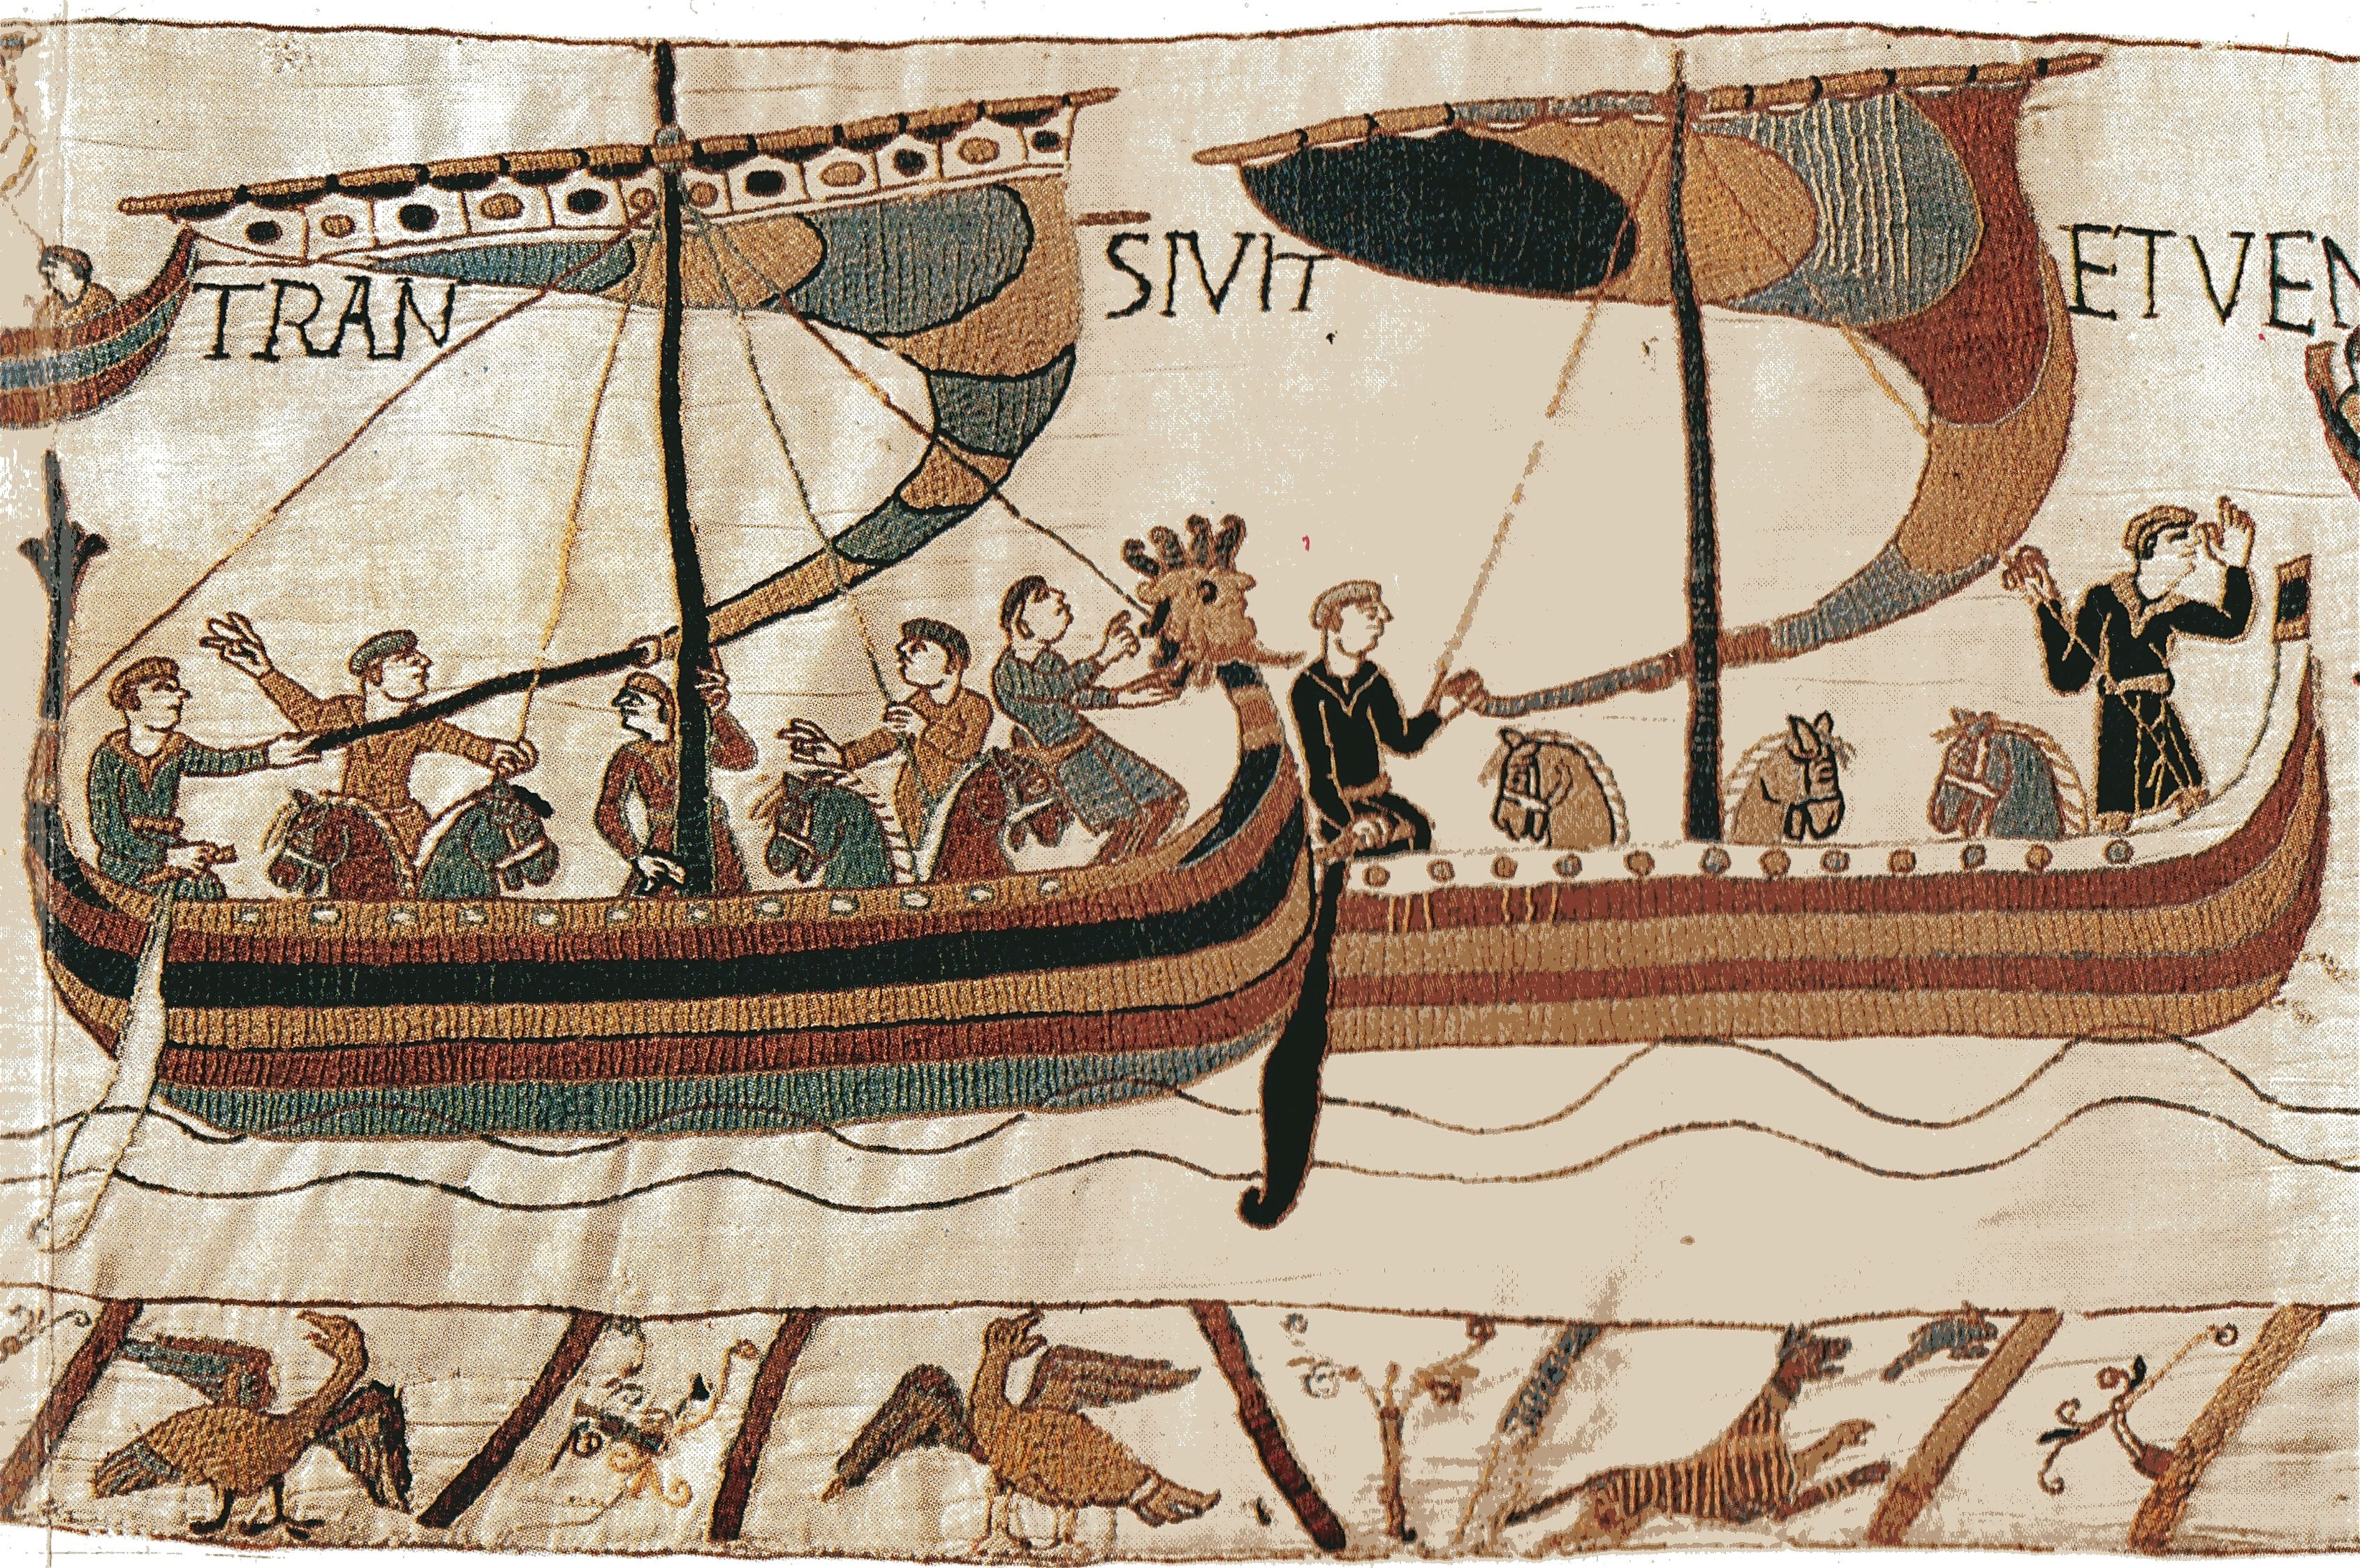 FROM THE HEART WITH GINI RIFKIN: The Bayeux Tapestry.